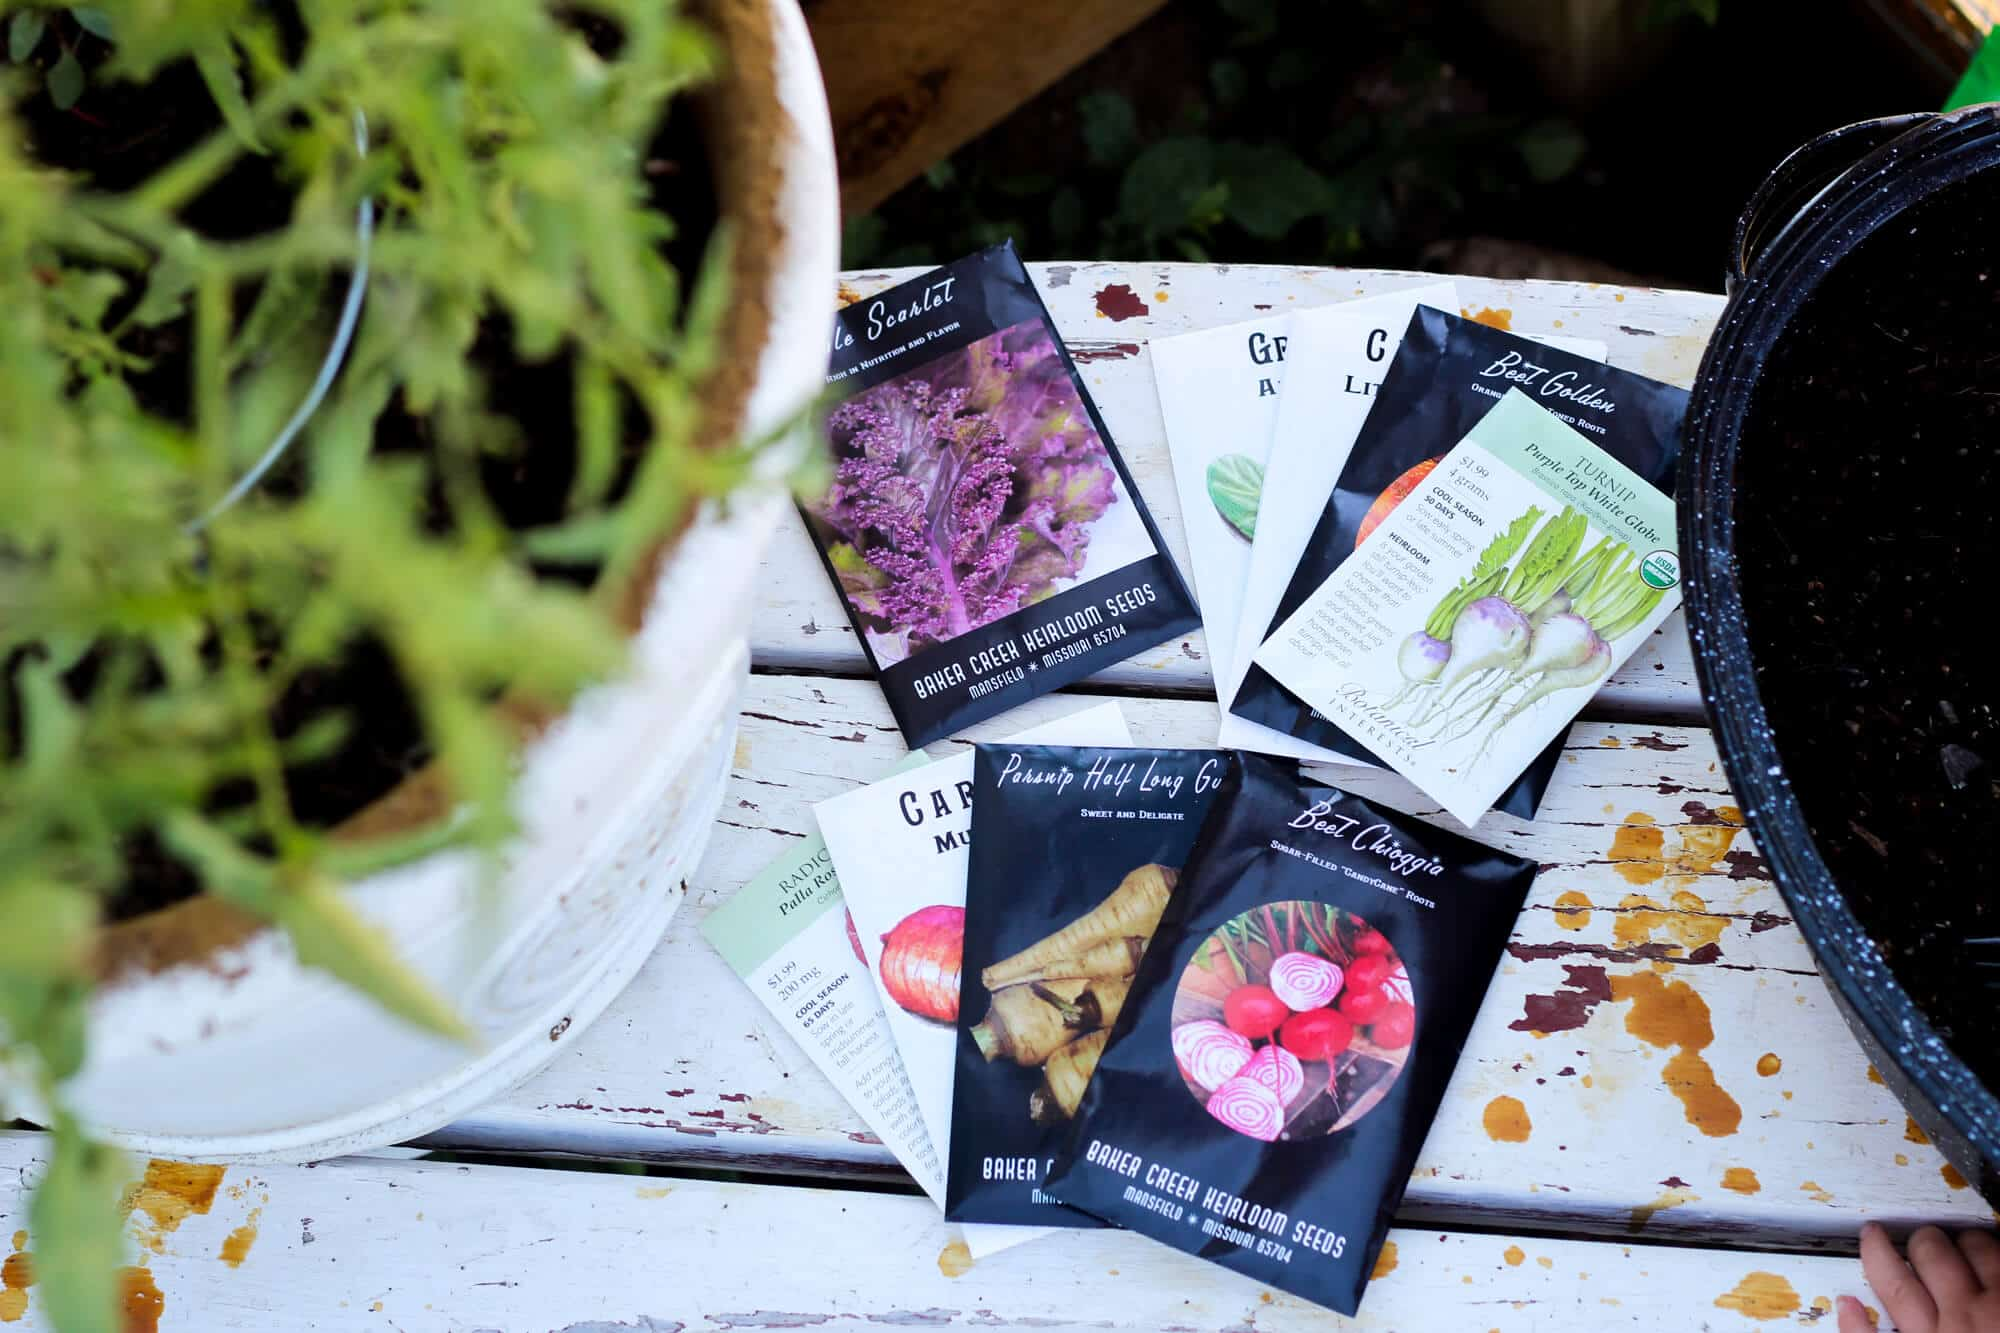 heirloom garden seeds